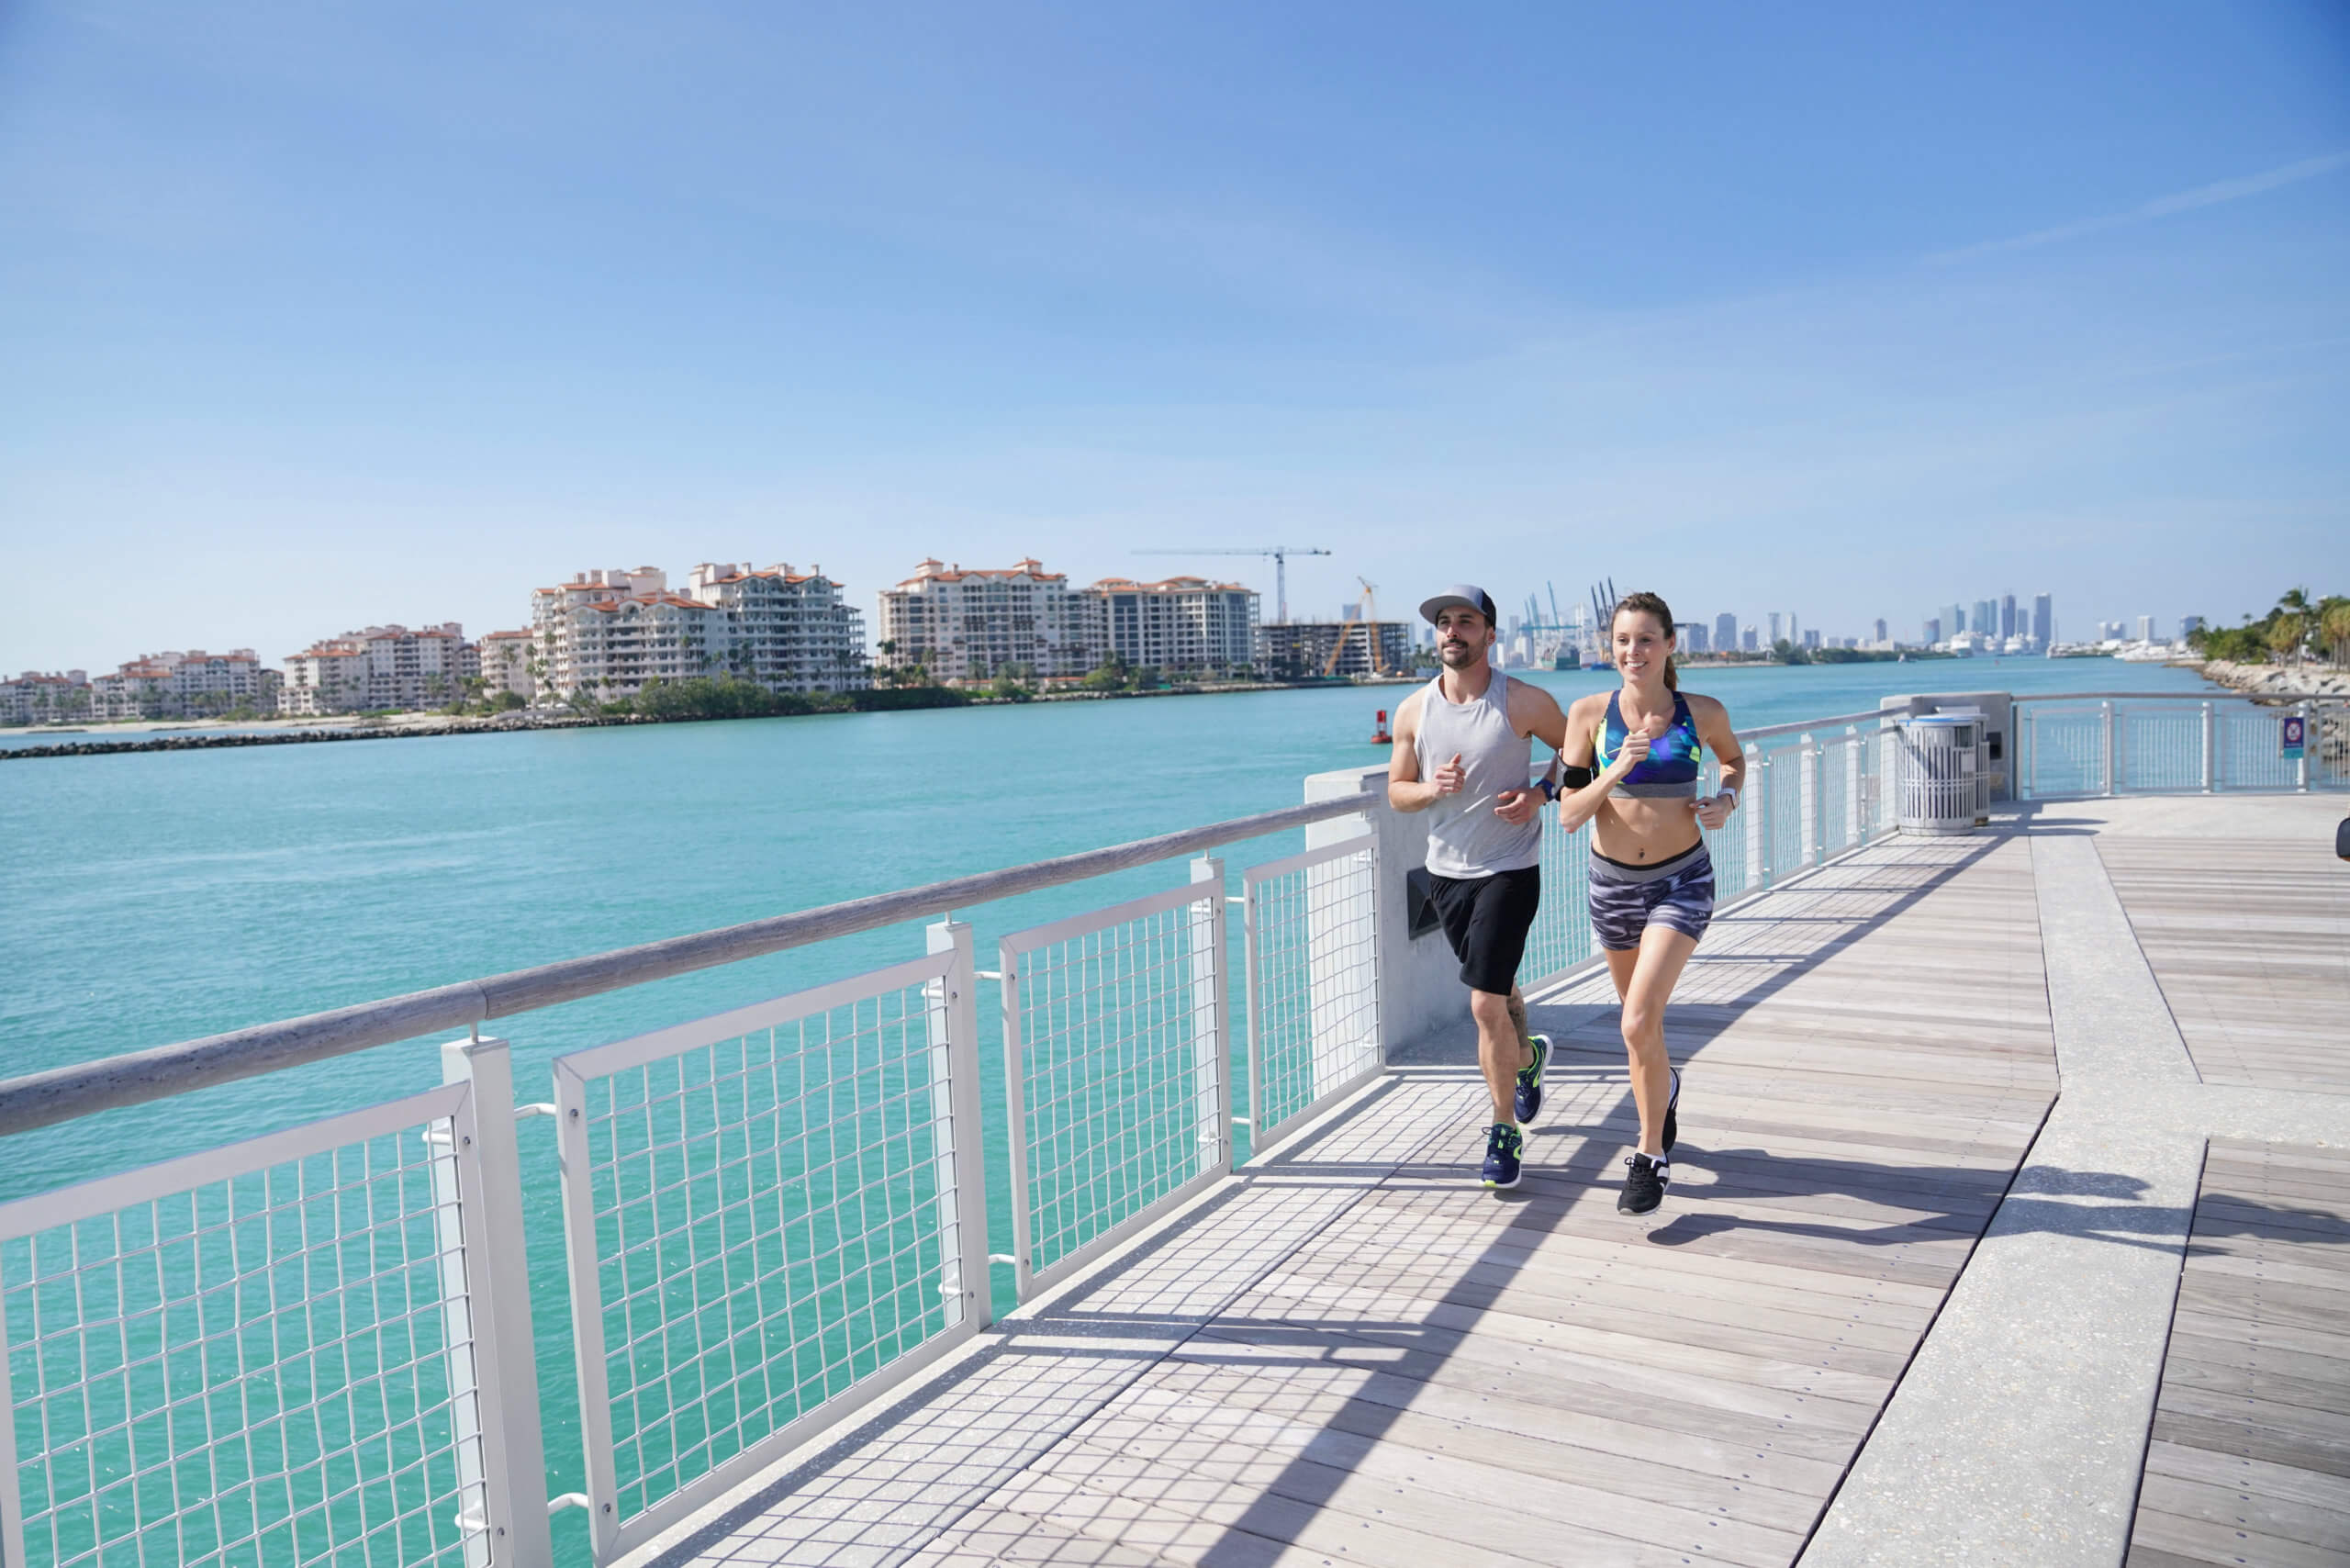 What to do in Miami during COVID